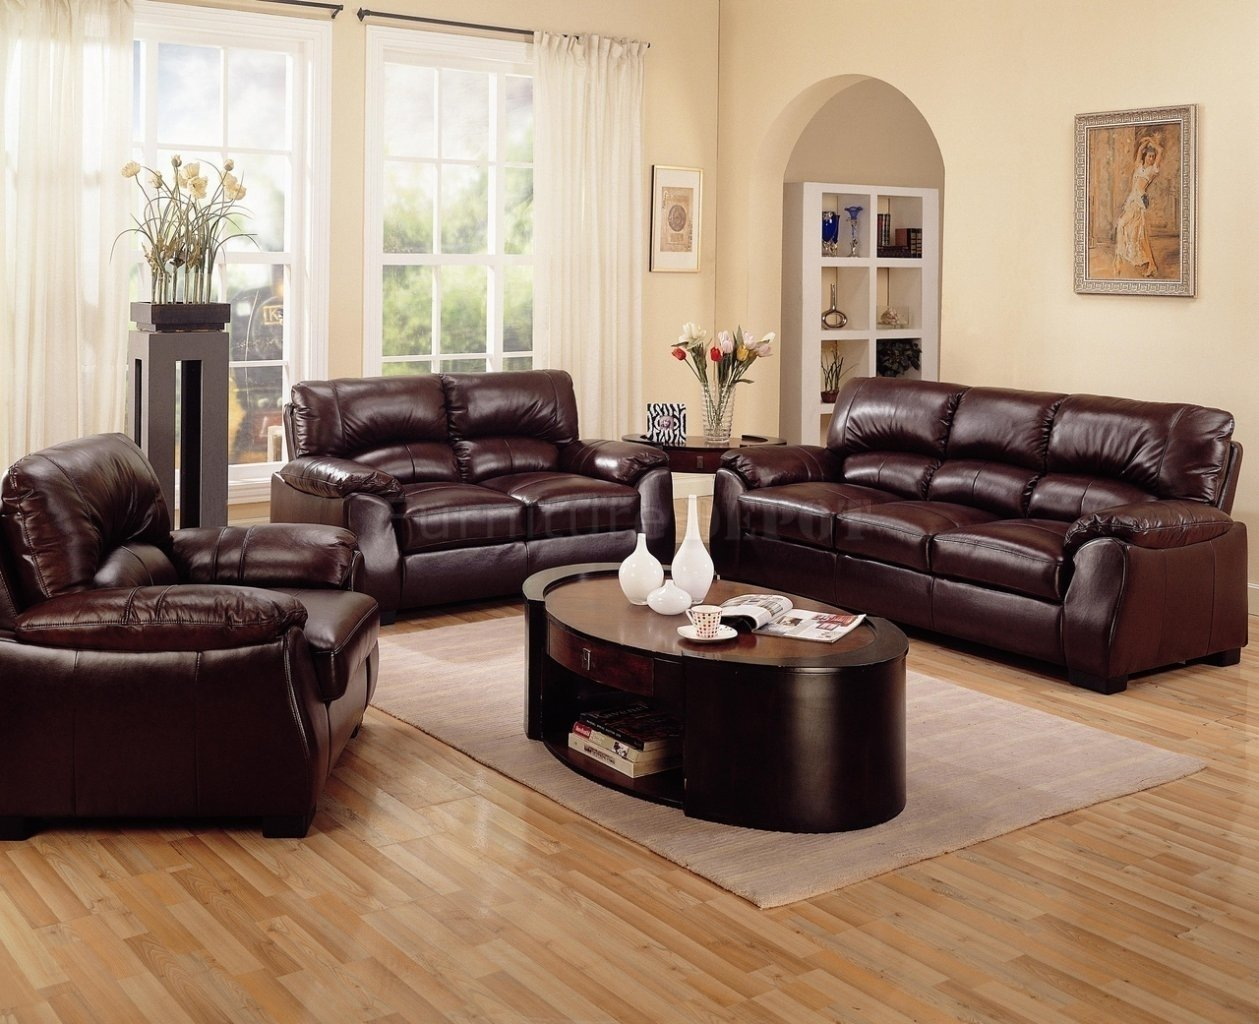 10 Stylish Brown Leather Sofa Decorating Ideas decorating living room with brown leather sofa e280a2 leather sofa 2020